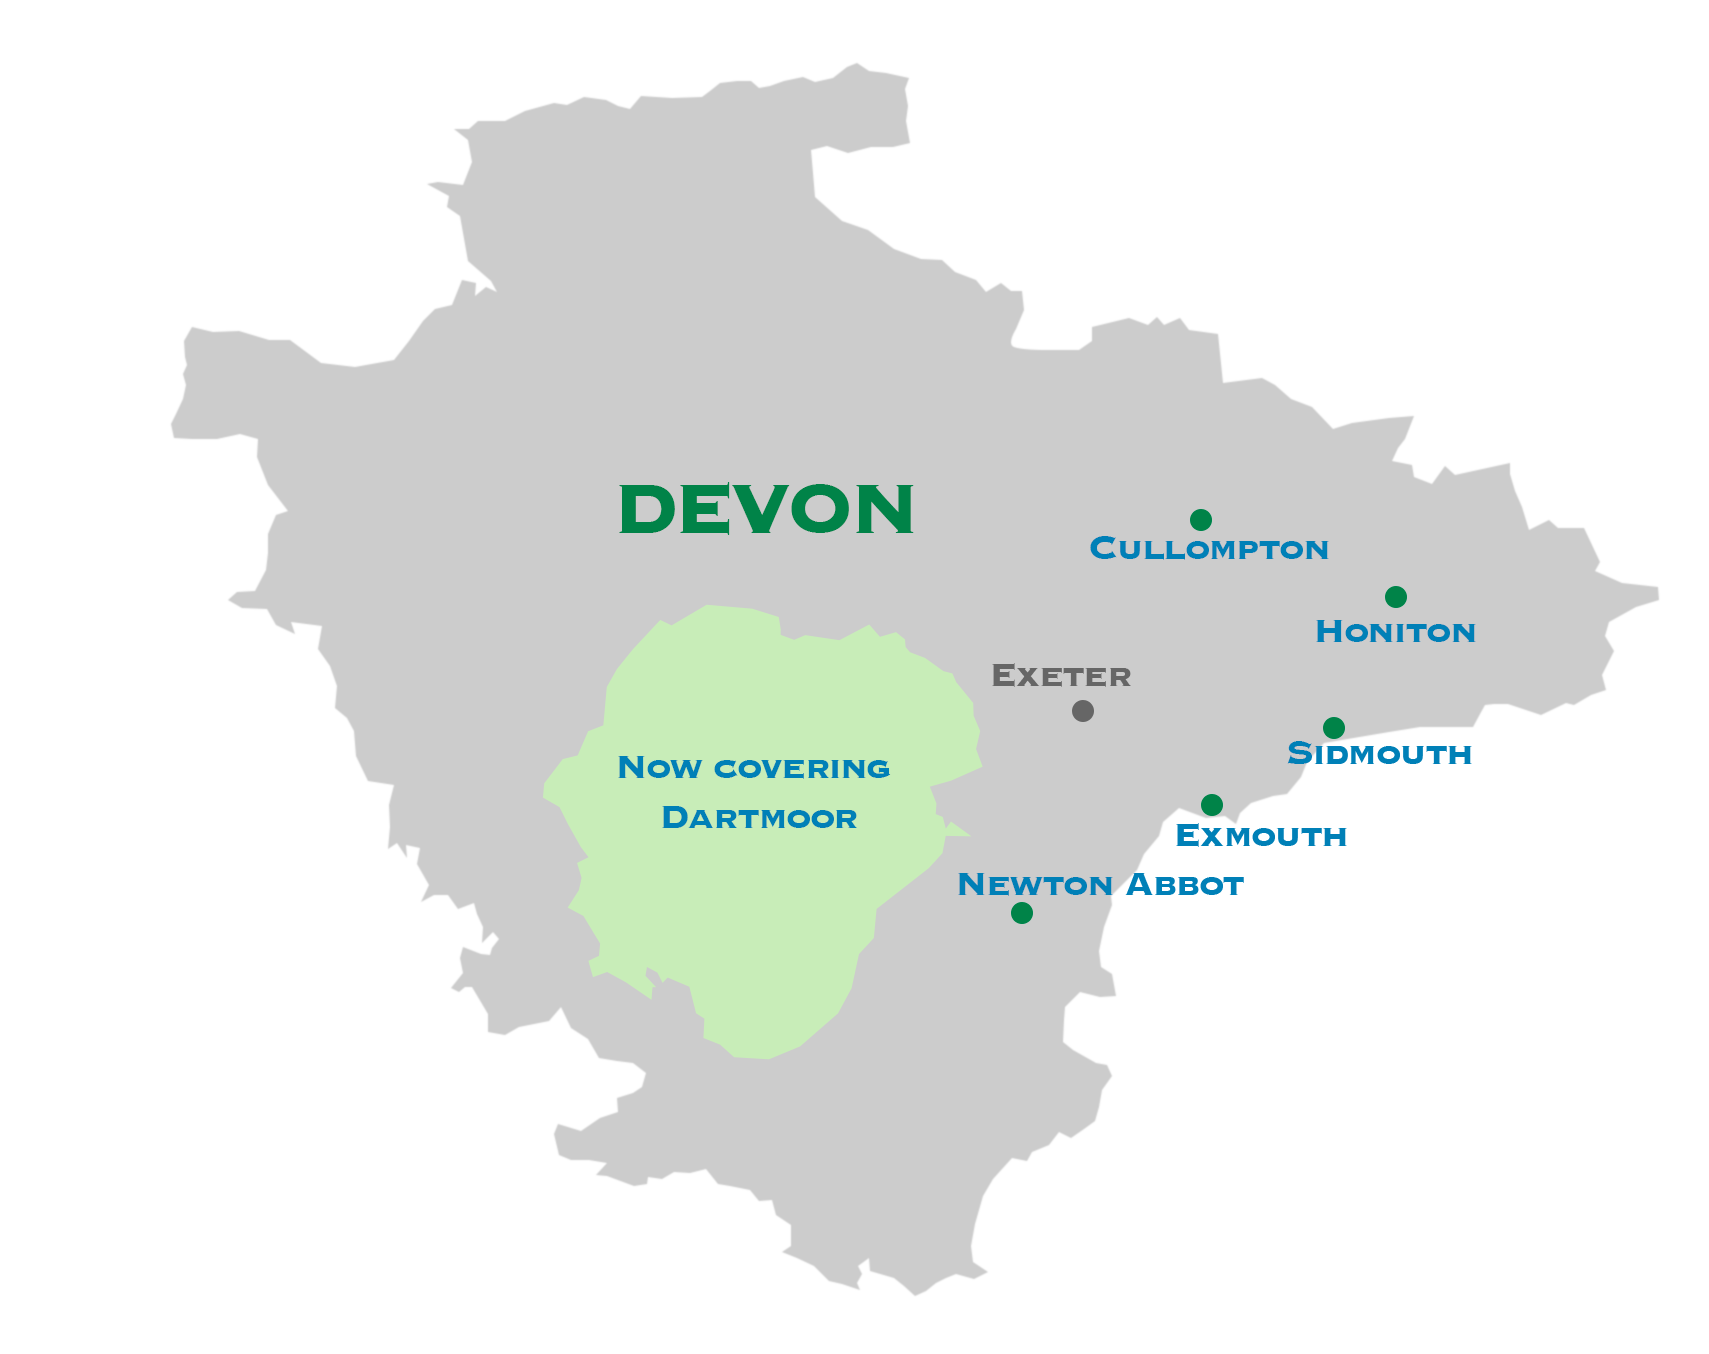 Devon map: Covering Dartmoor & East Devon: Cullompton, Honiton, Sidmouth, Exmouth and Newton Abbot